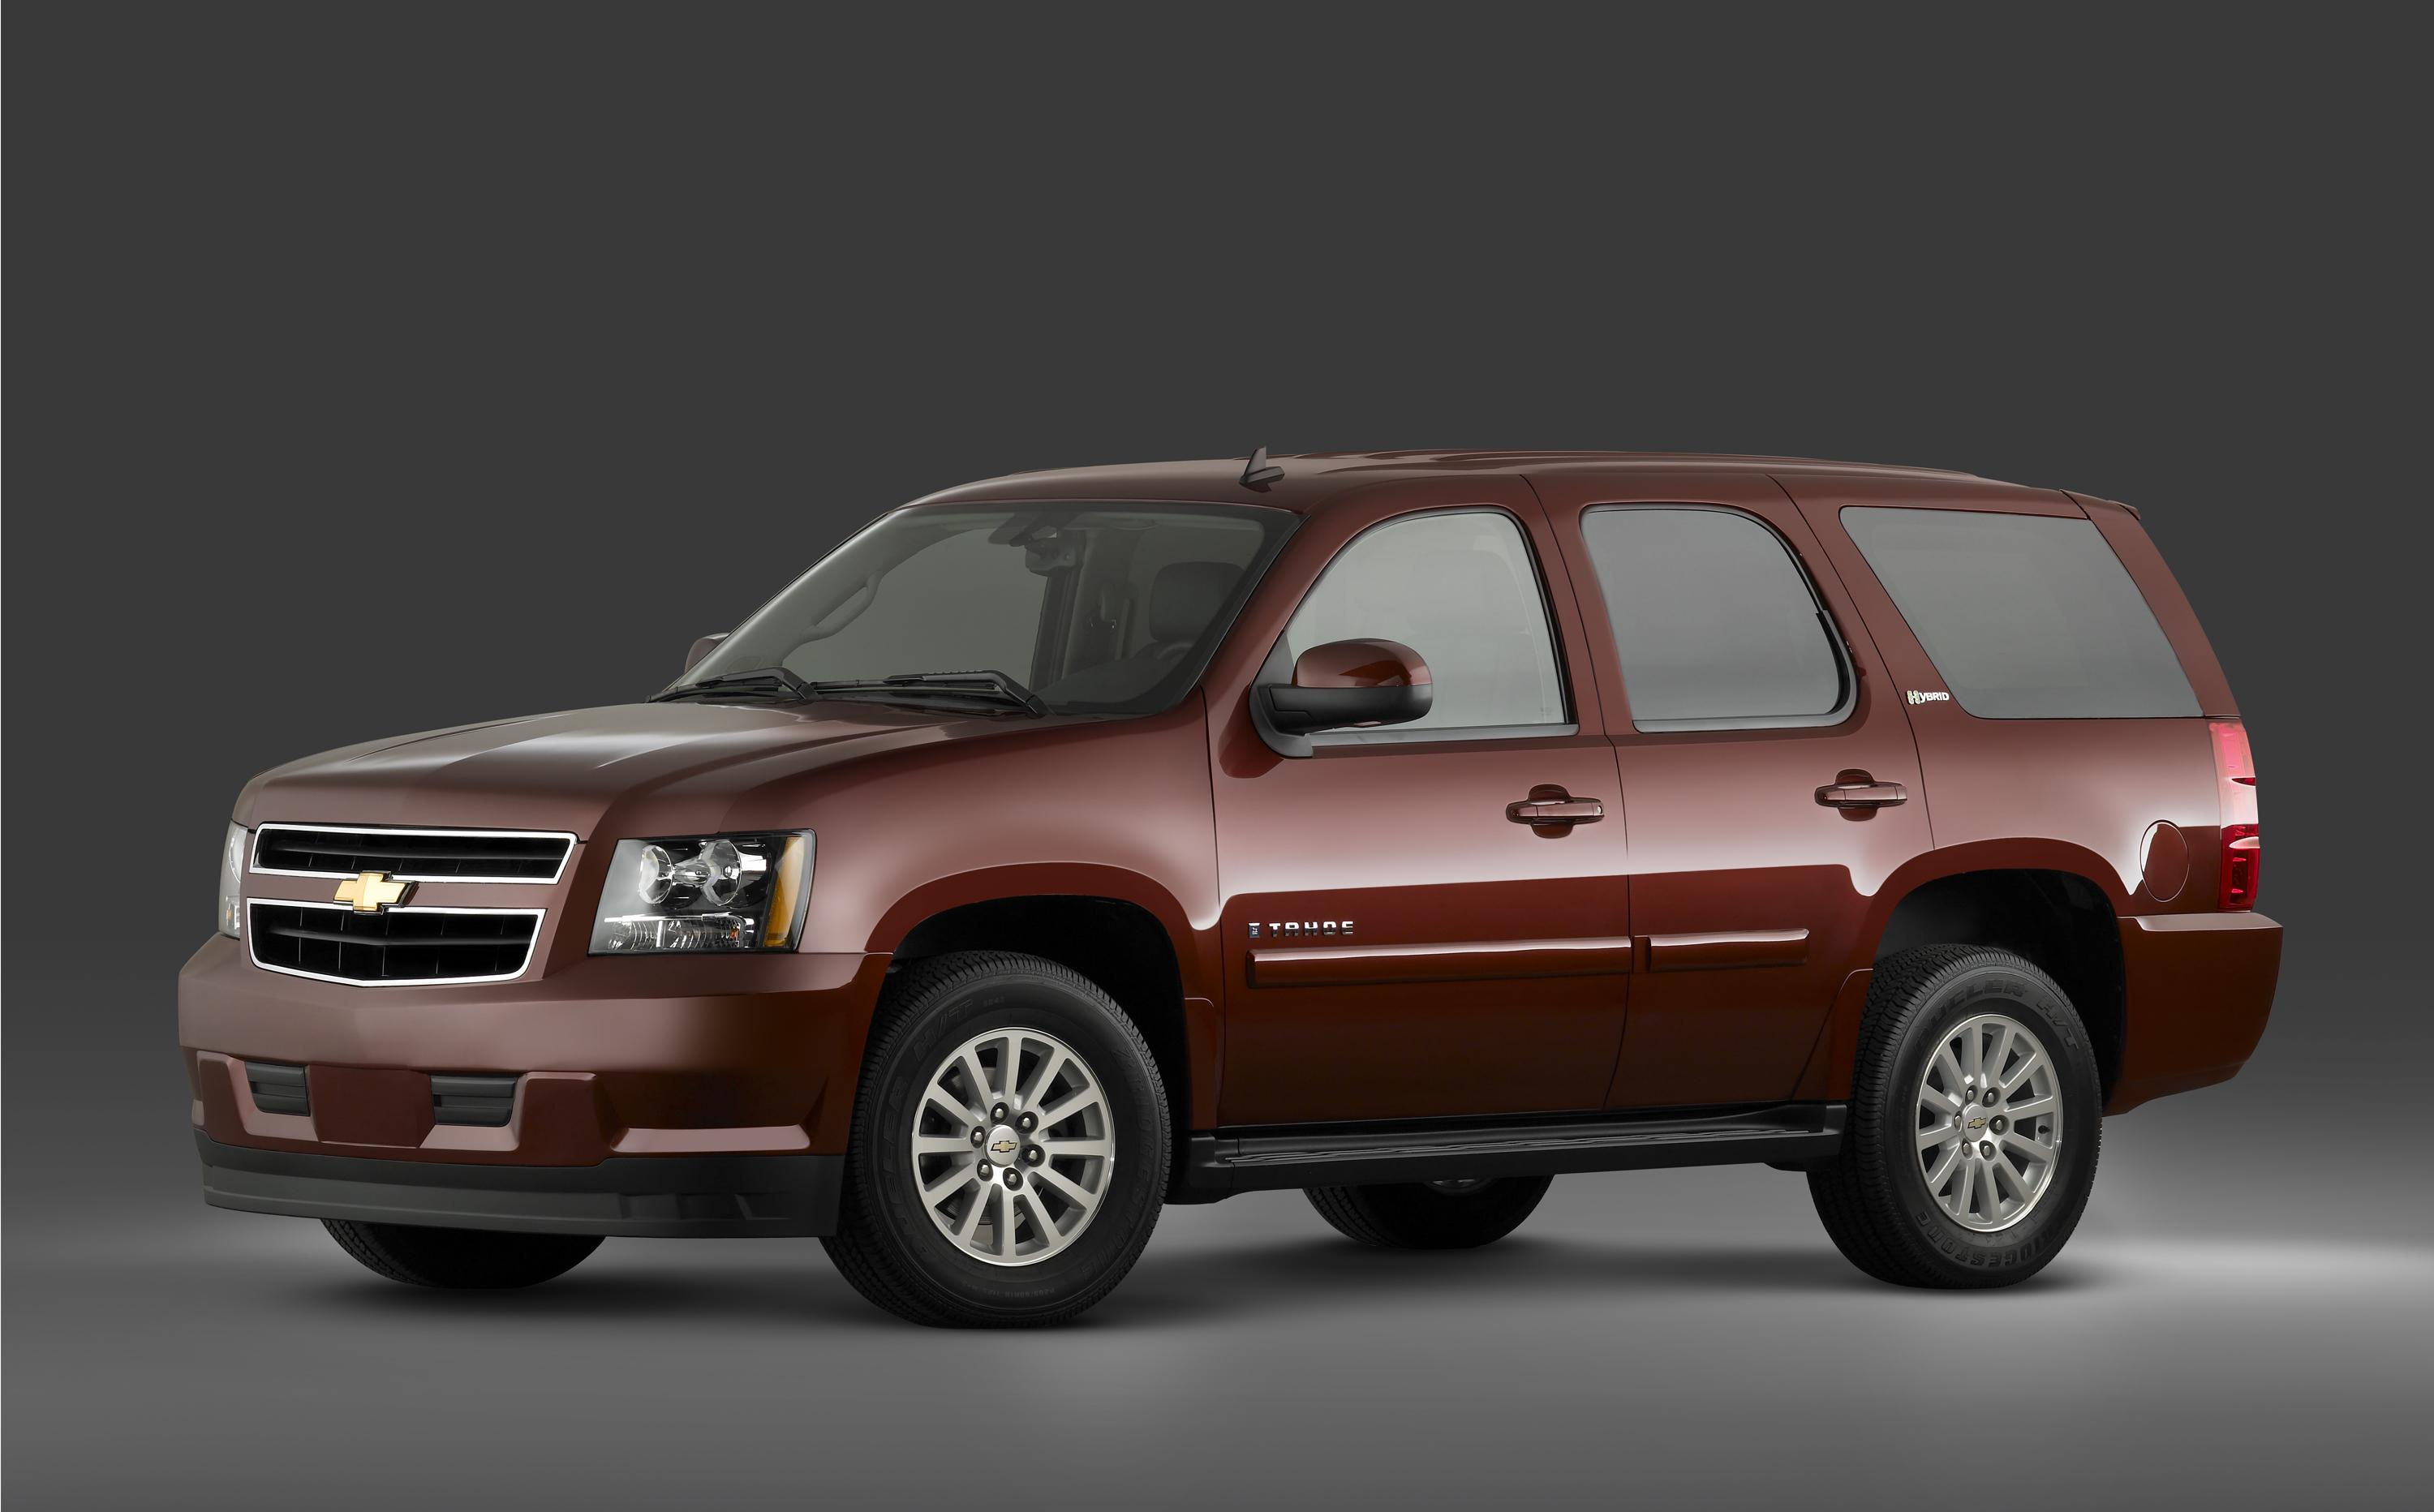 2008 chevrolet tahoe hybrid review gallery top speed. Black Bedroom Furniture Sets. Home Design Ideas